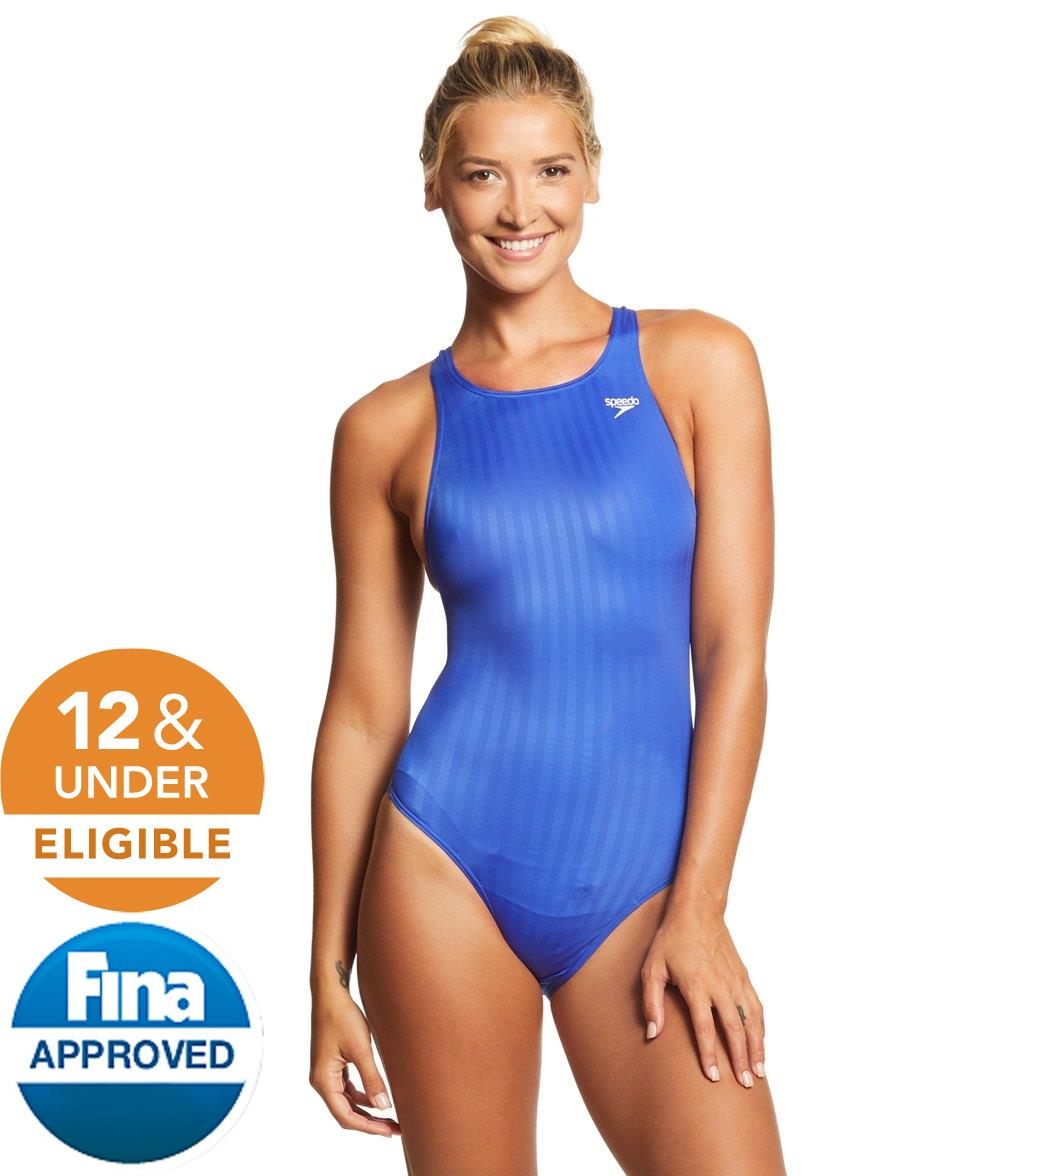 Speedo Women's Aquablade Recordbreaker Tech Suit Swimsuit